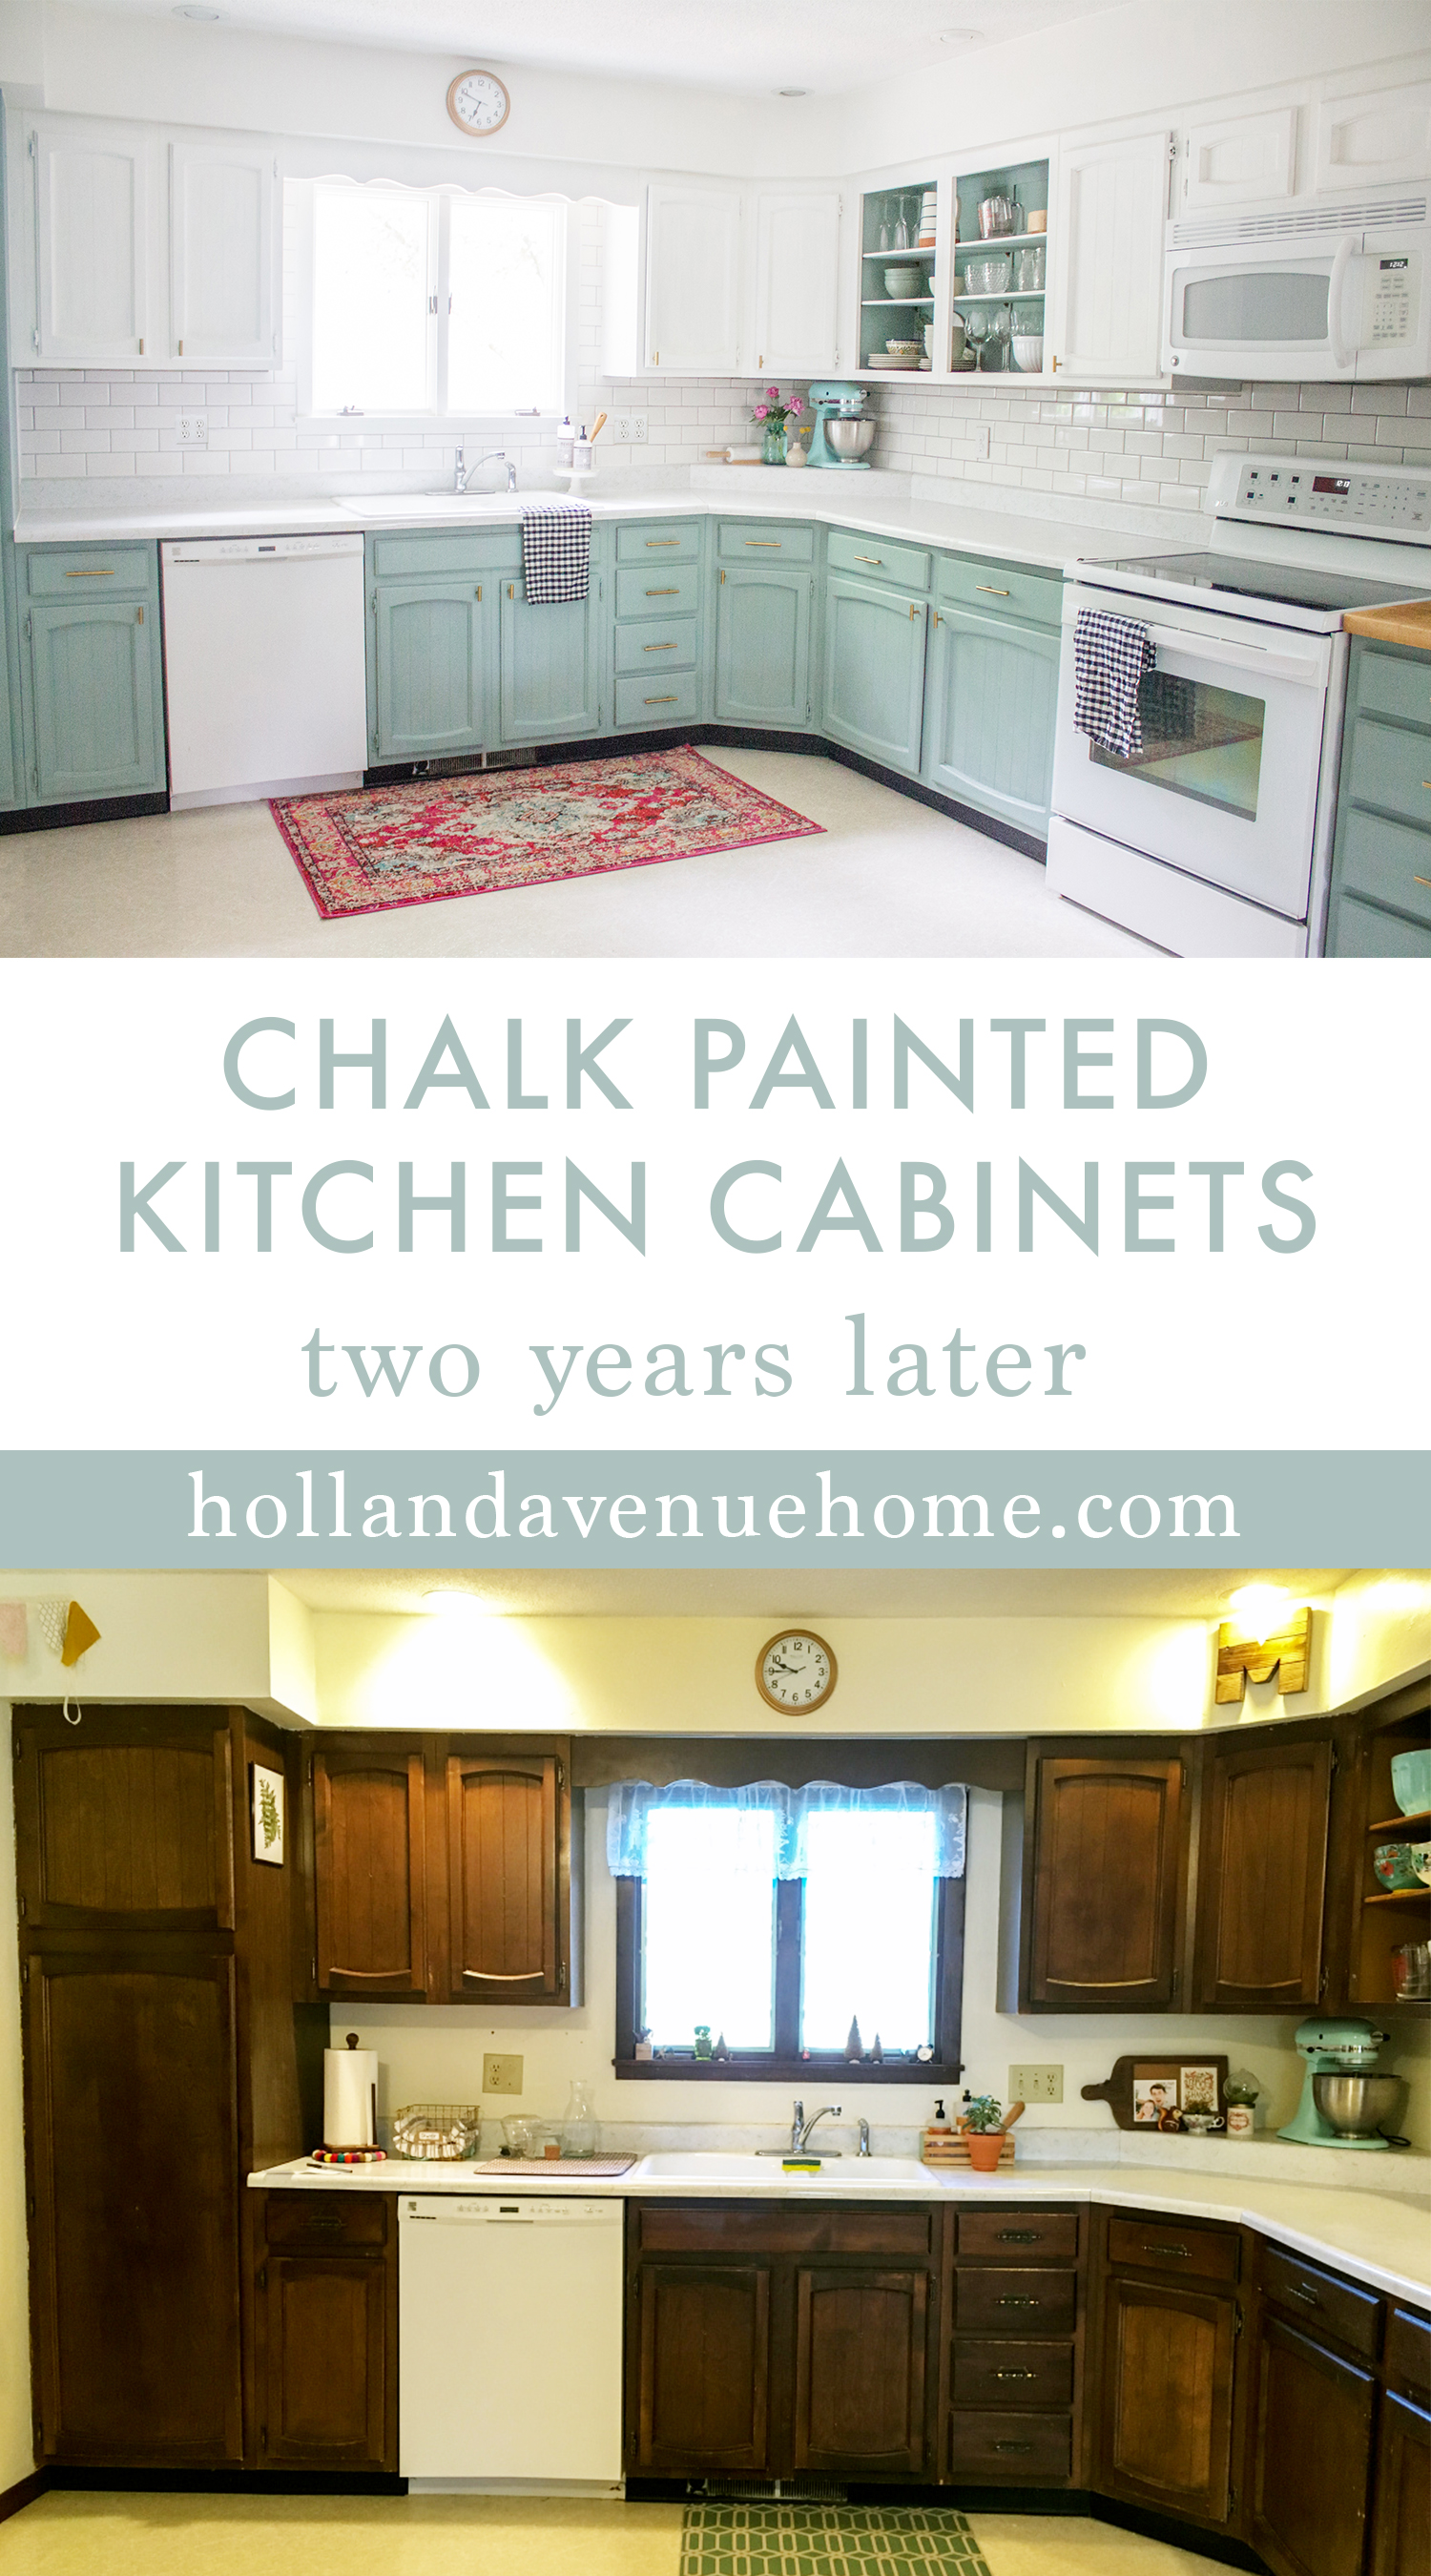 Chalk Painted Kitchen Cabinets Two Years Later Holland Avenue Home